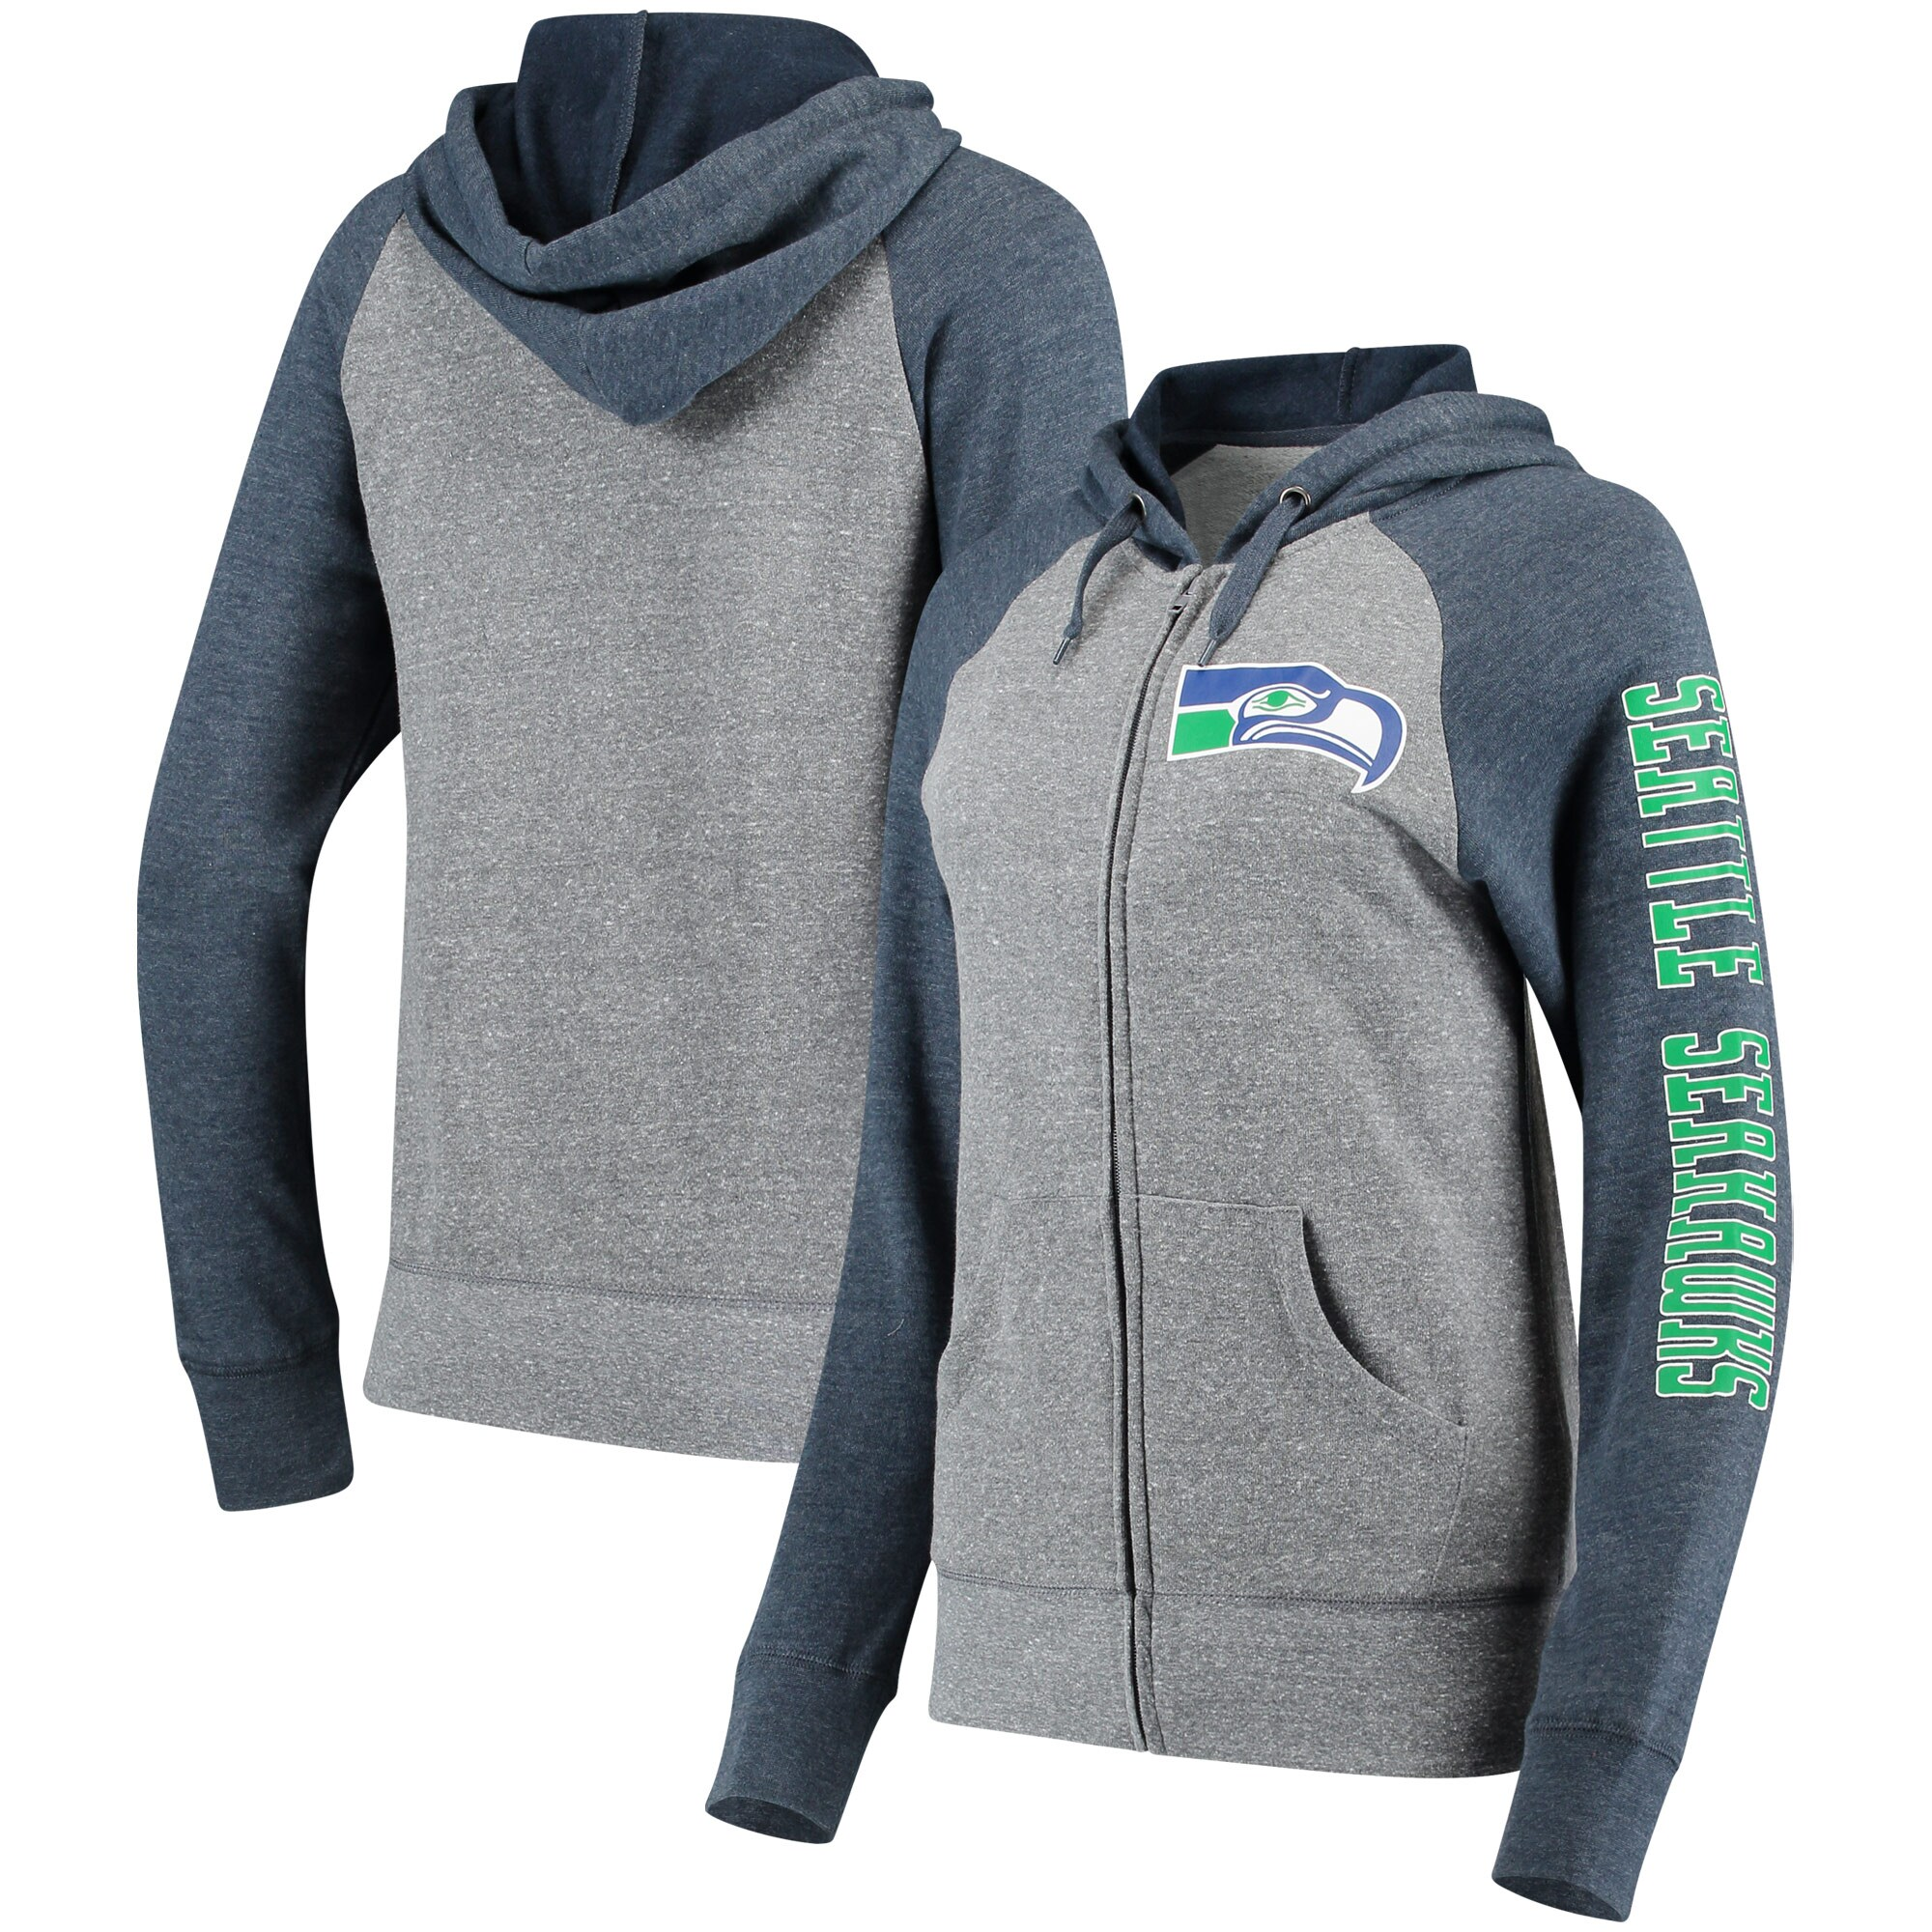 Seattle Seahawks 5th & Ocean by New Era Women's Fleece Tri-Blend Raglan Sleeve Full-Zip Hoodie - Heathered Gray/College Navy